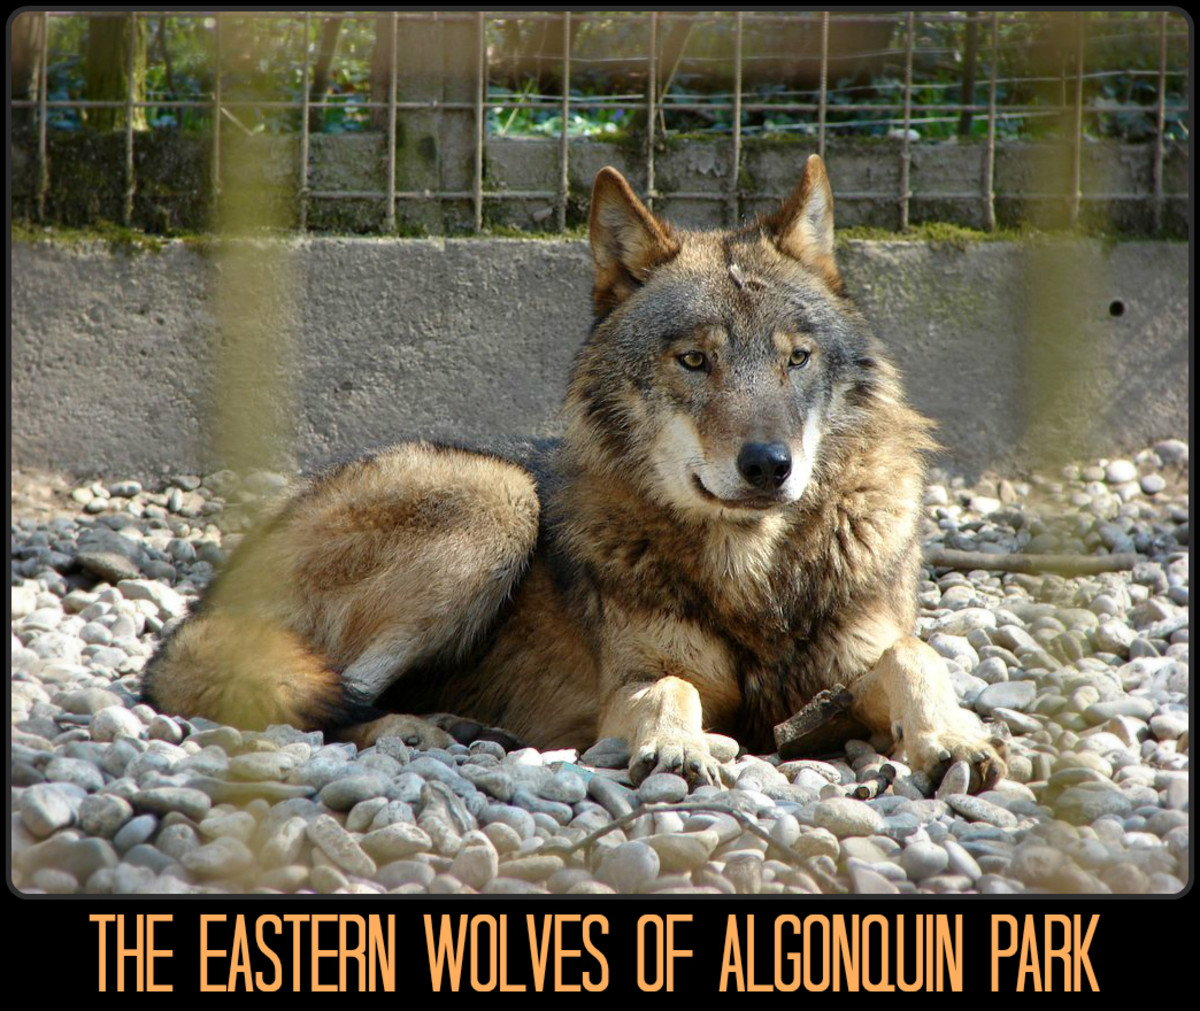 The Eastern Wolves of Algonquin Park